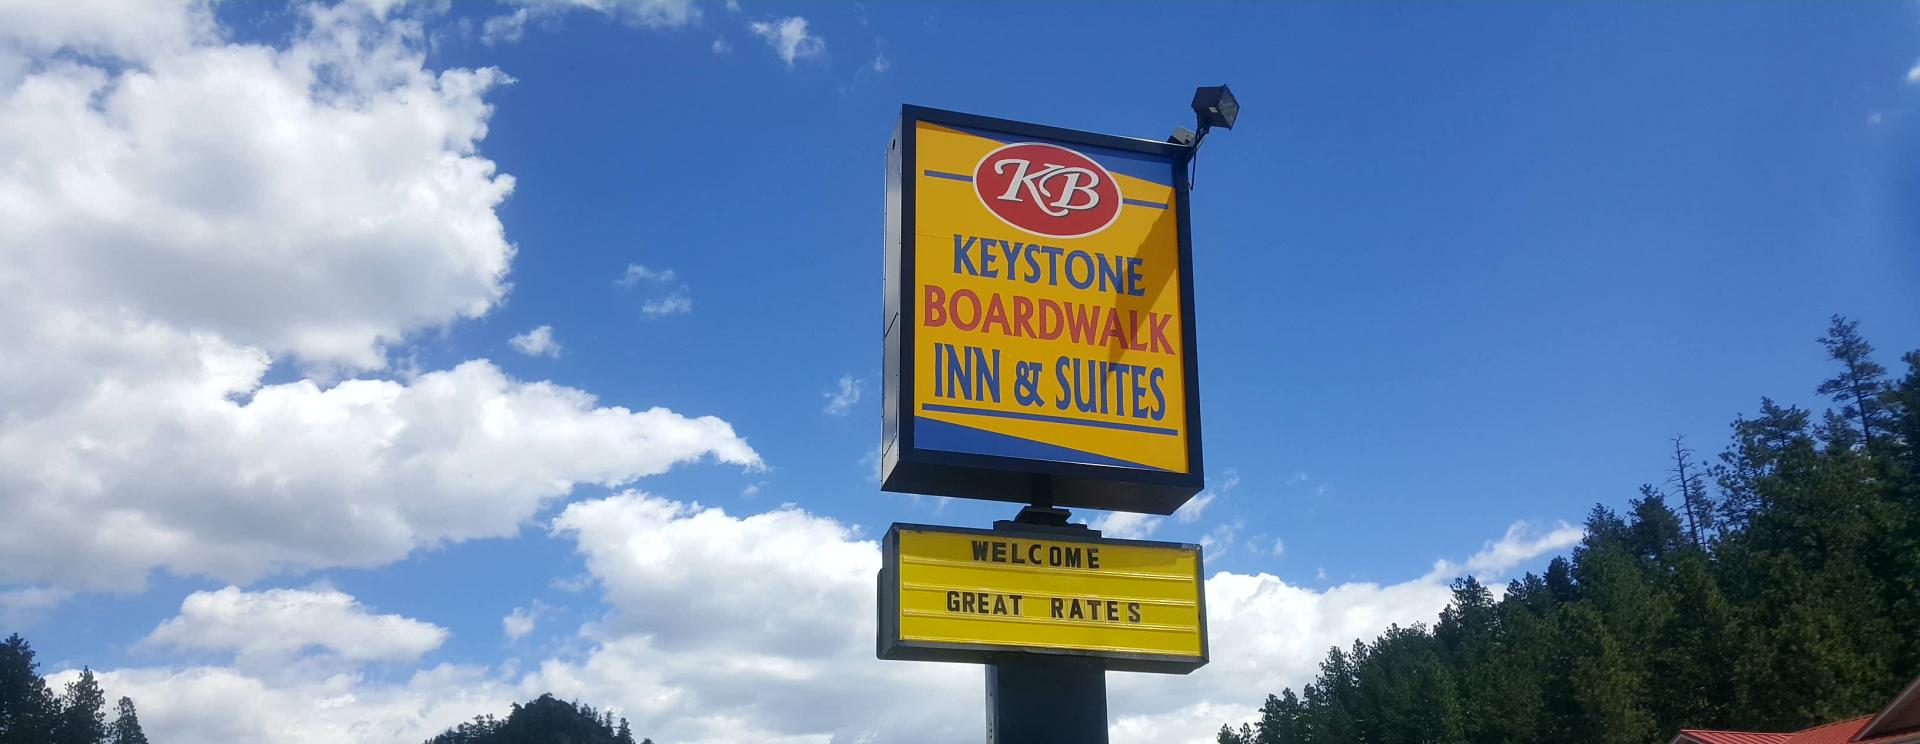 Keystone Boardwalk Inn